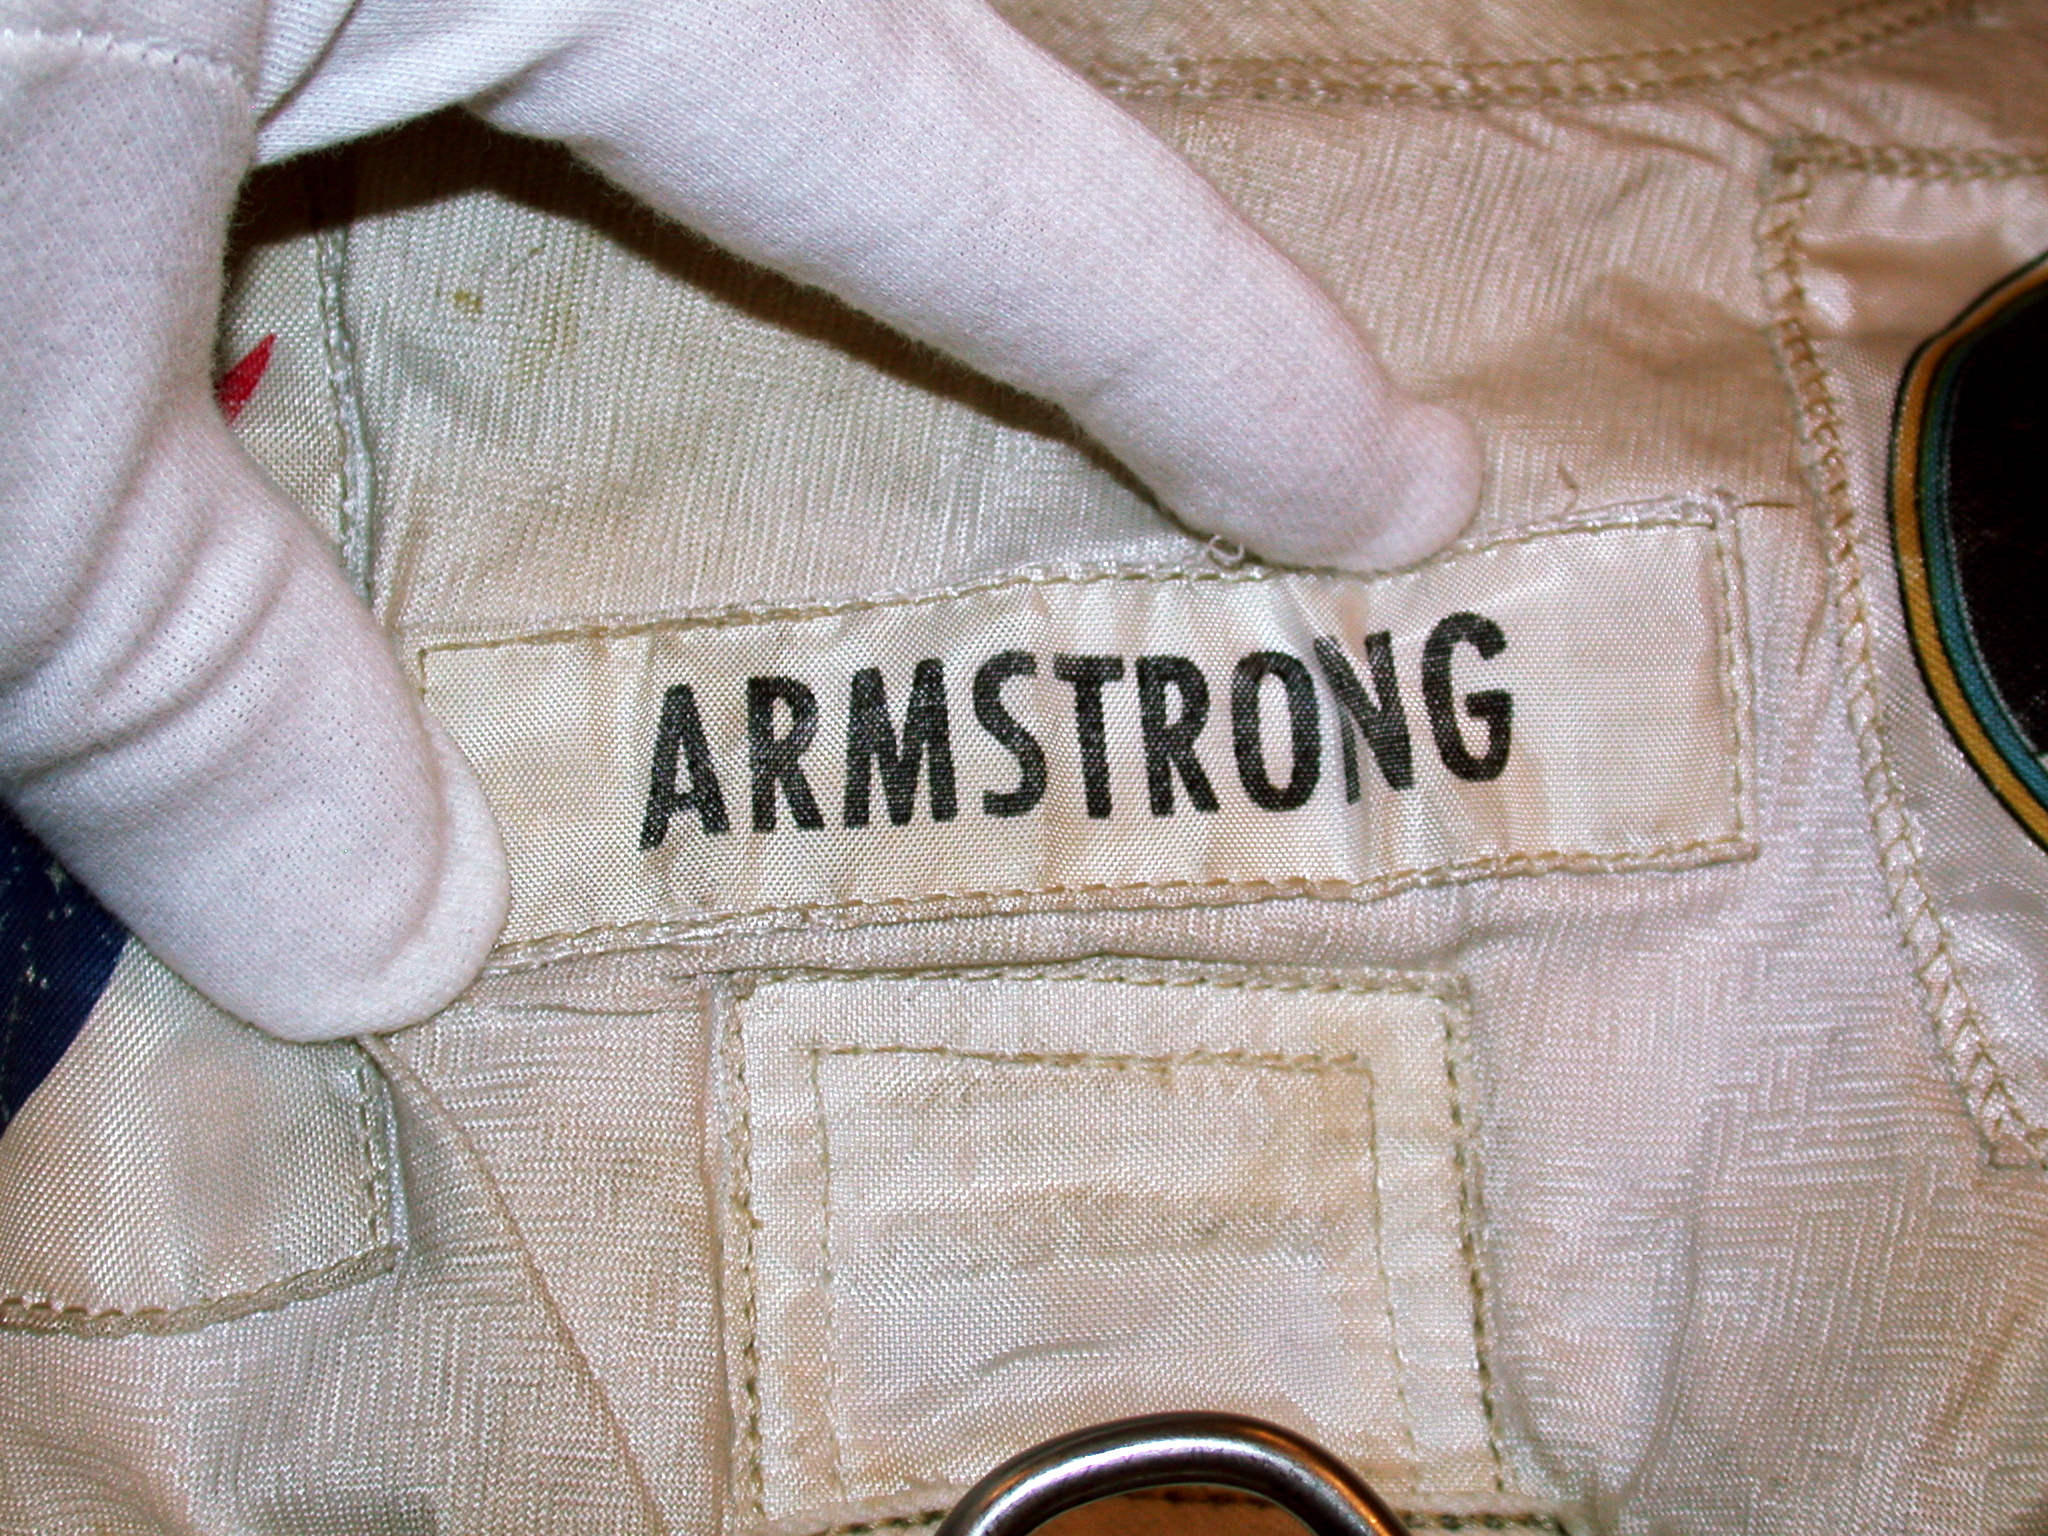 neil armstrong mission name patch - photo #12